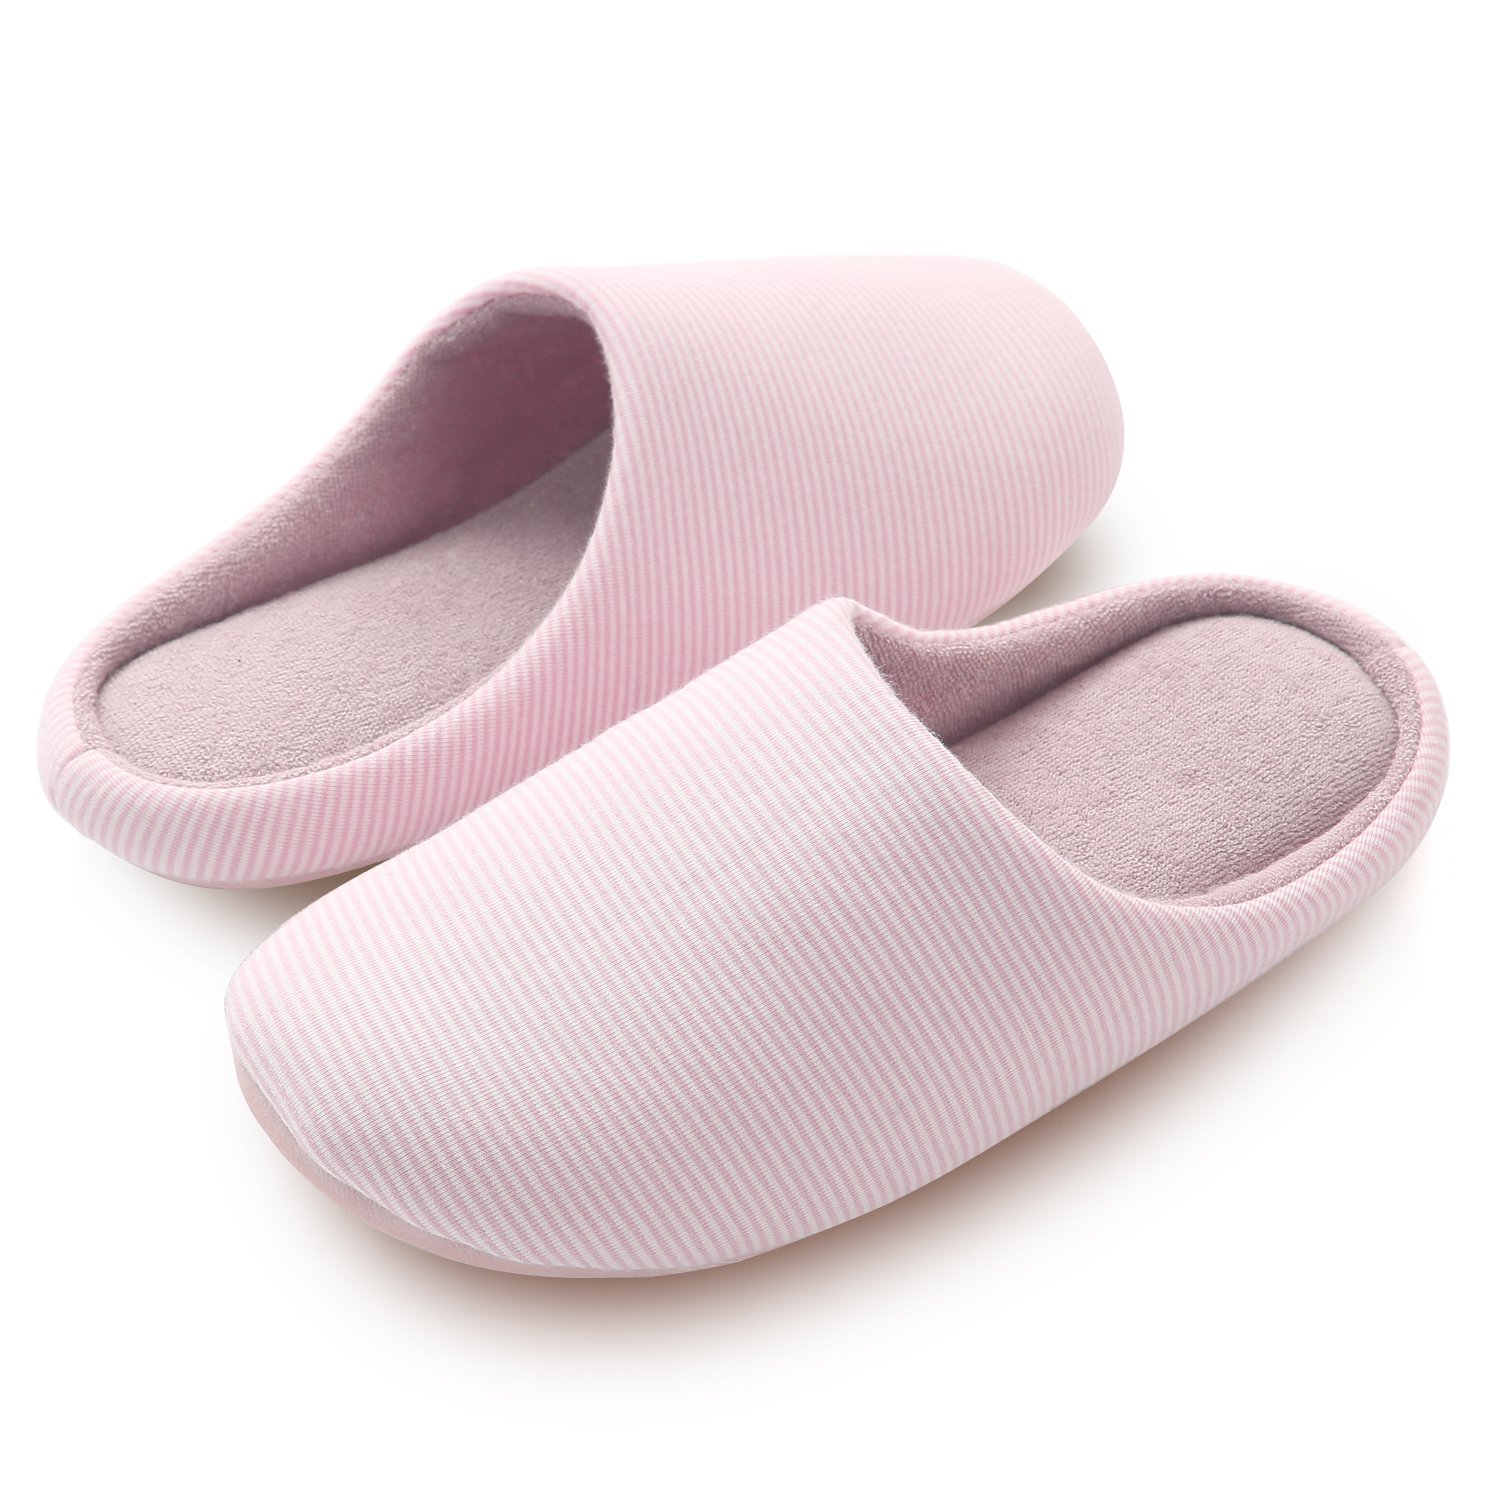 HOMOSEAL Women's Slippers Washable Closed Toe Ultra Lightweight Cotton Indoor Slipper, M, Pink